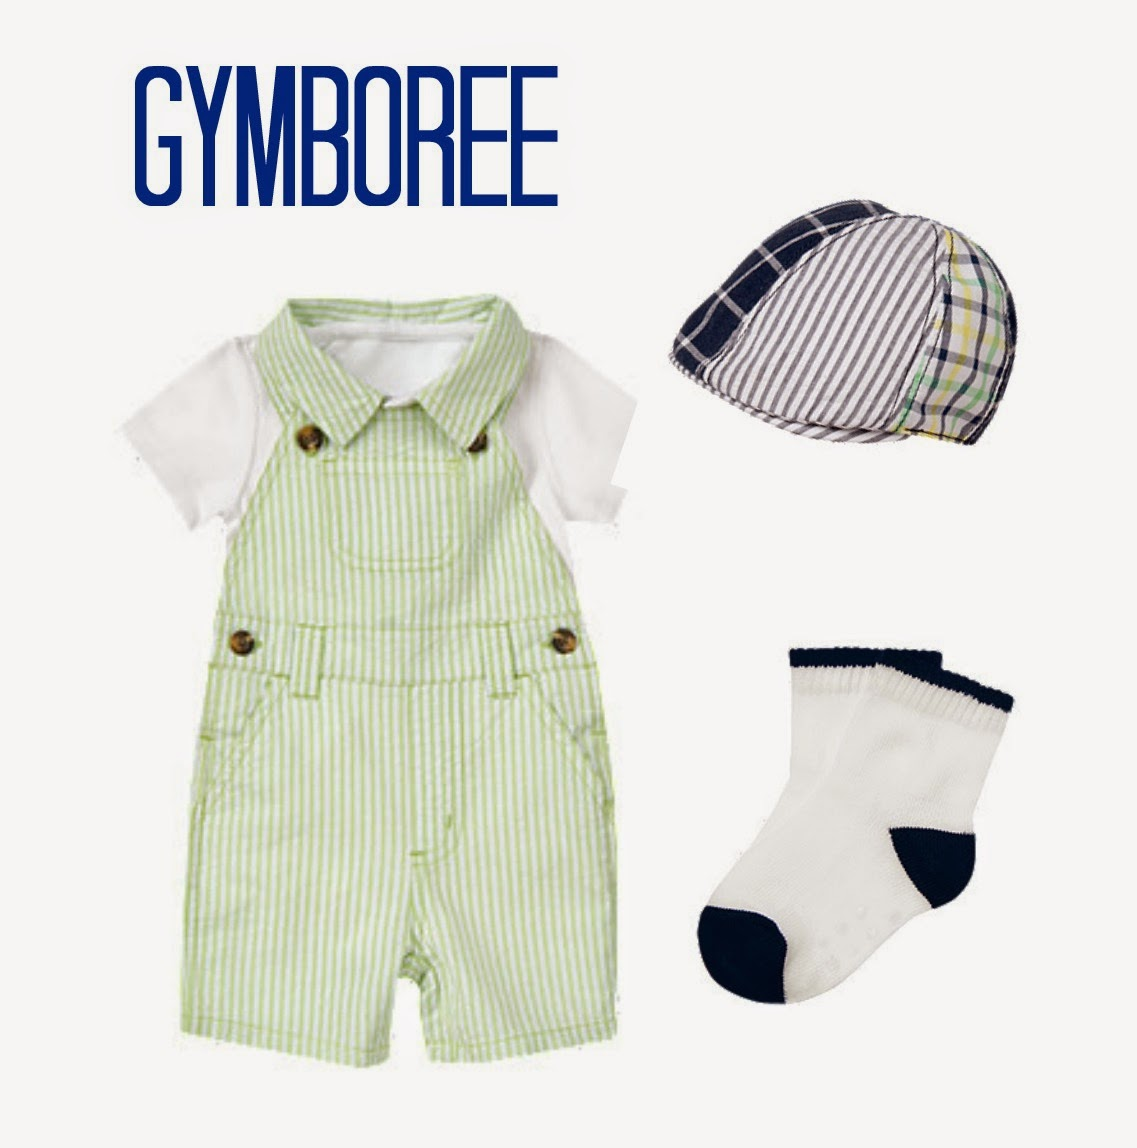 Gymboree Boys Easter Outfit